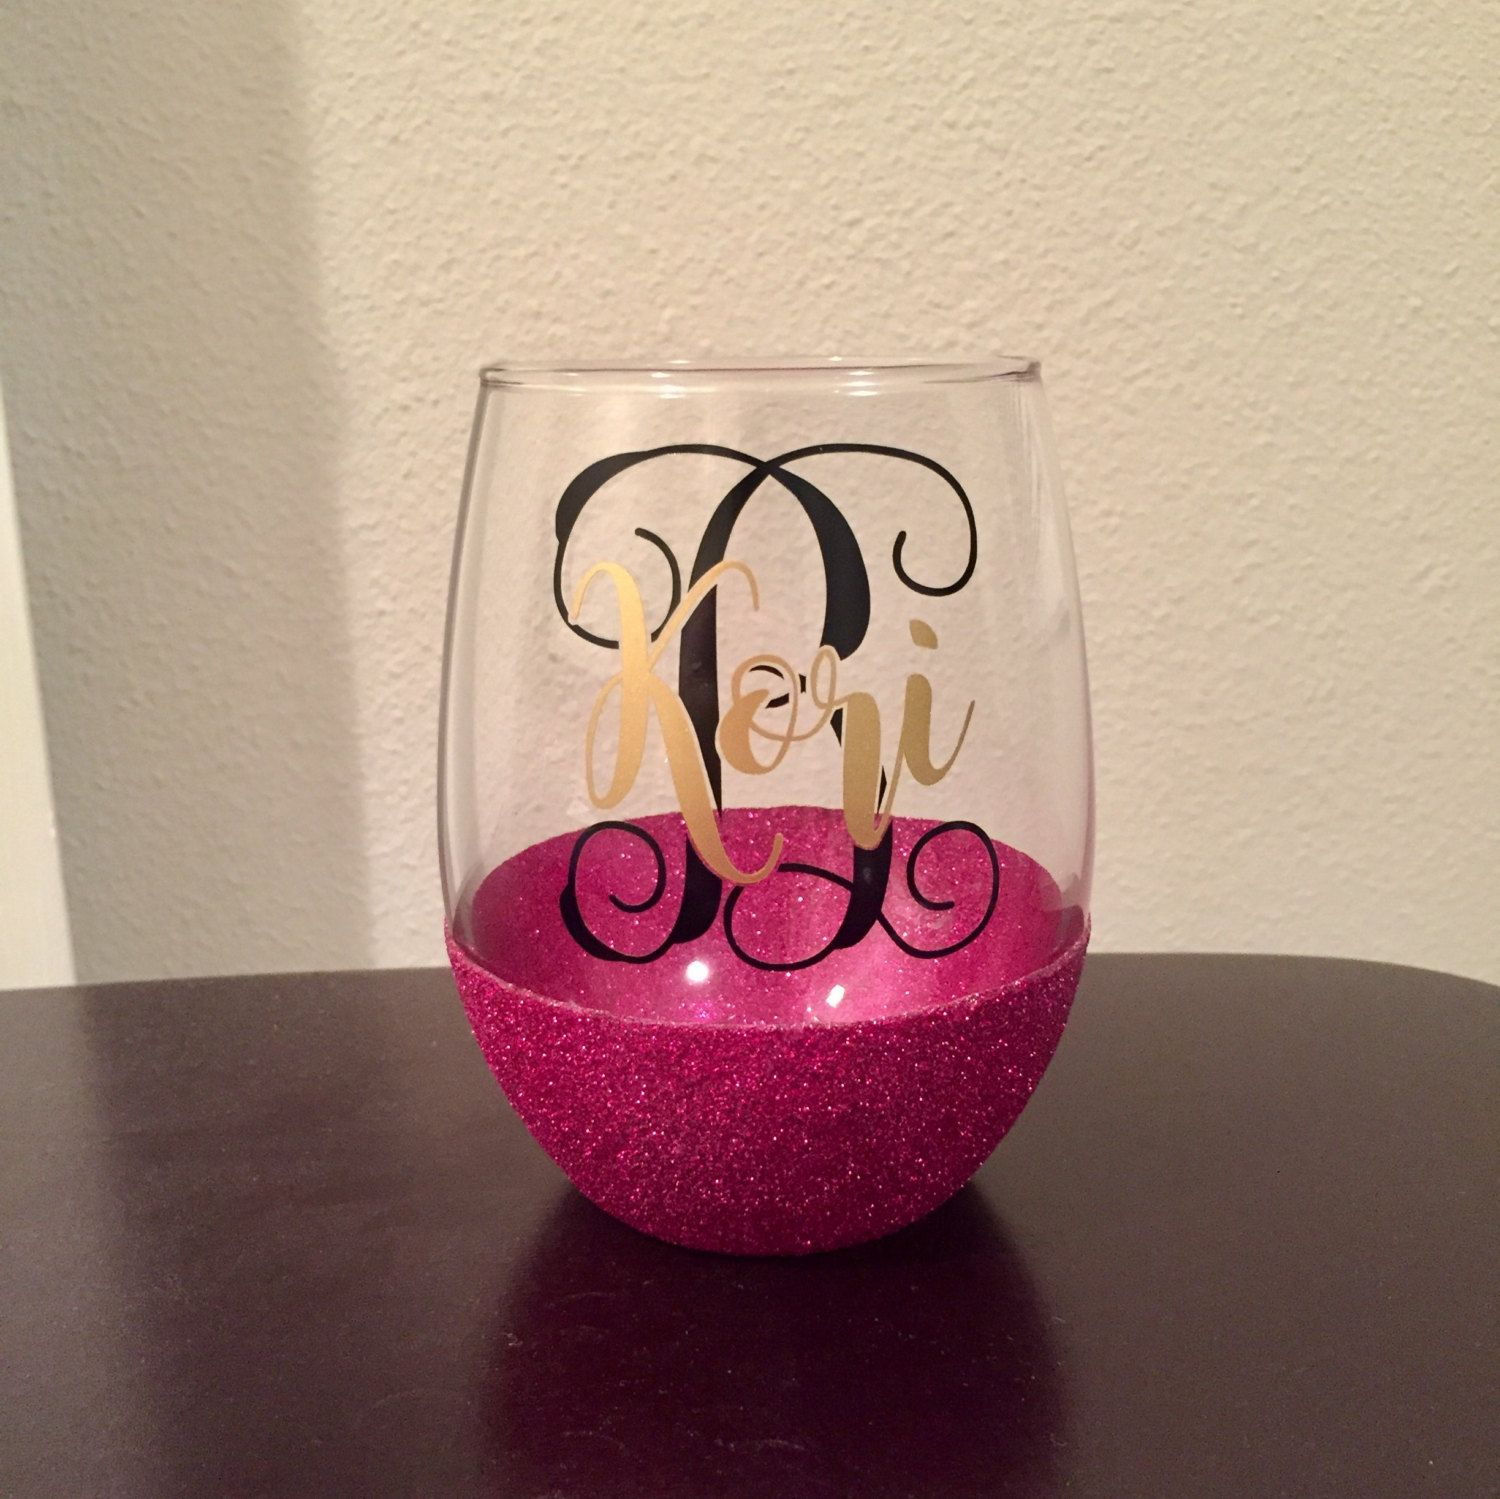 Nameinitial glitter dipped stemless wine glass 20 oz by nameinitial glitter dipped stemless wine glass 20 oz by countyroadcustoms on etsy floridaeventfo Gallery